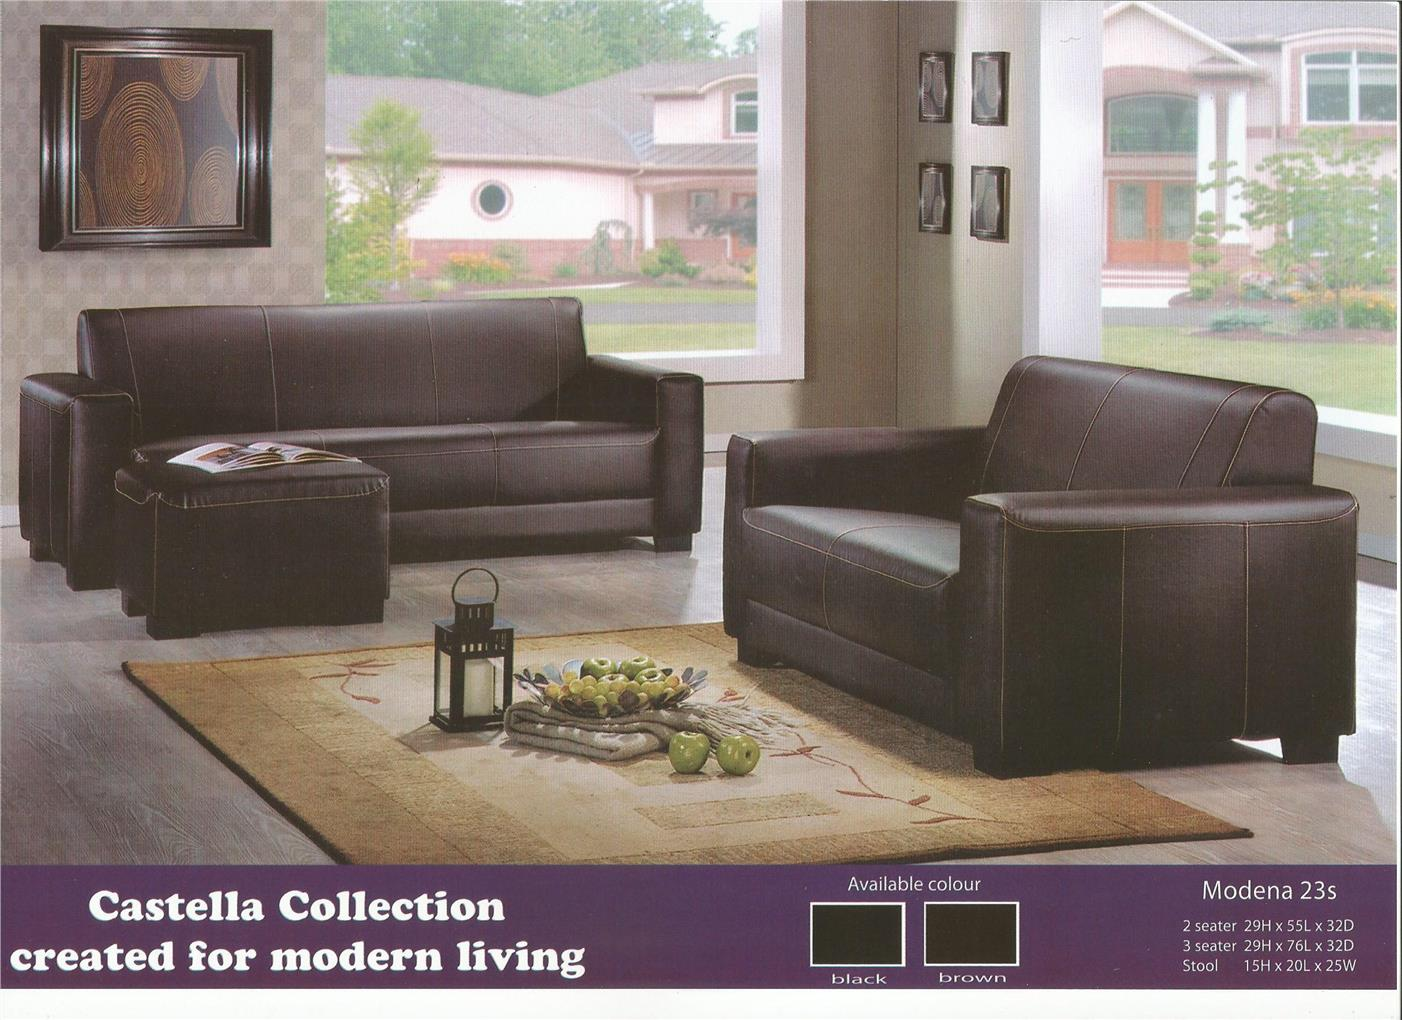 NiceHome Set Promo 2+3+stool sofa set model - MODENA 23S